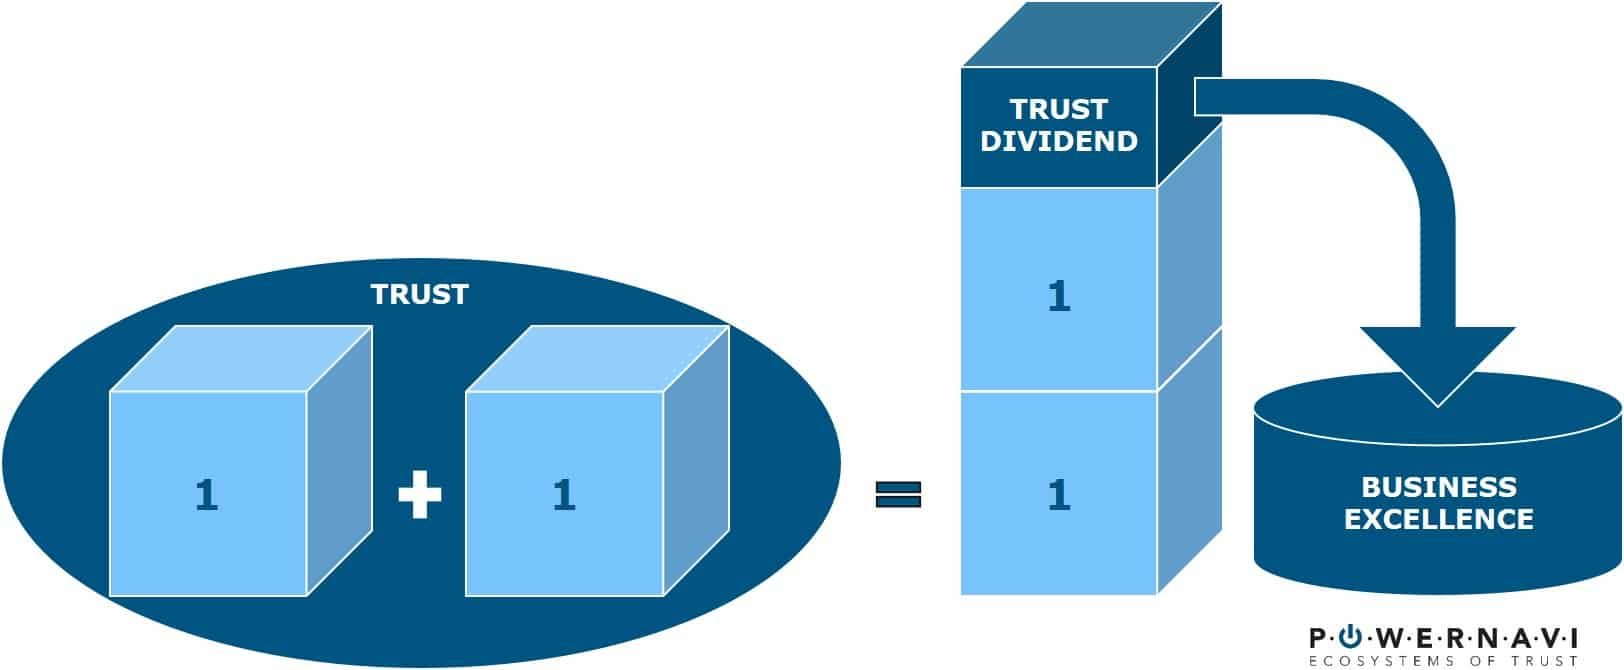 Trust dividend powernavi ecosystems of trust